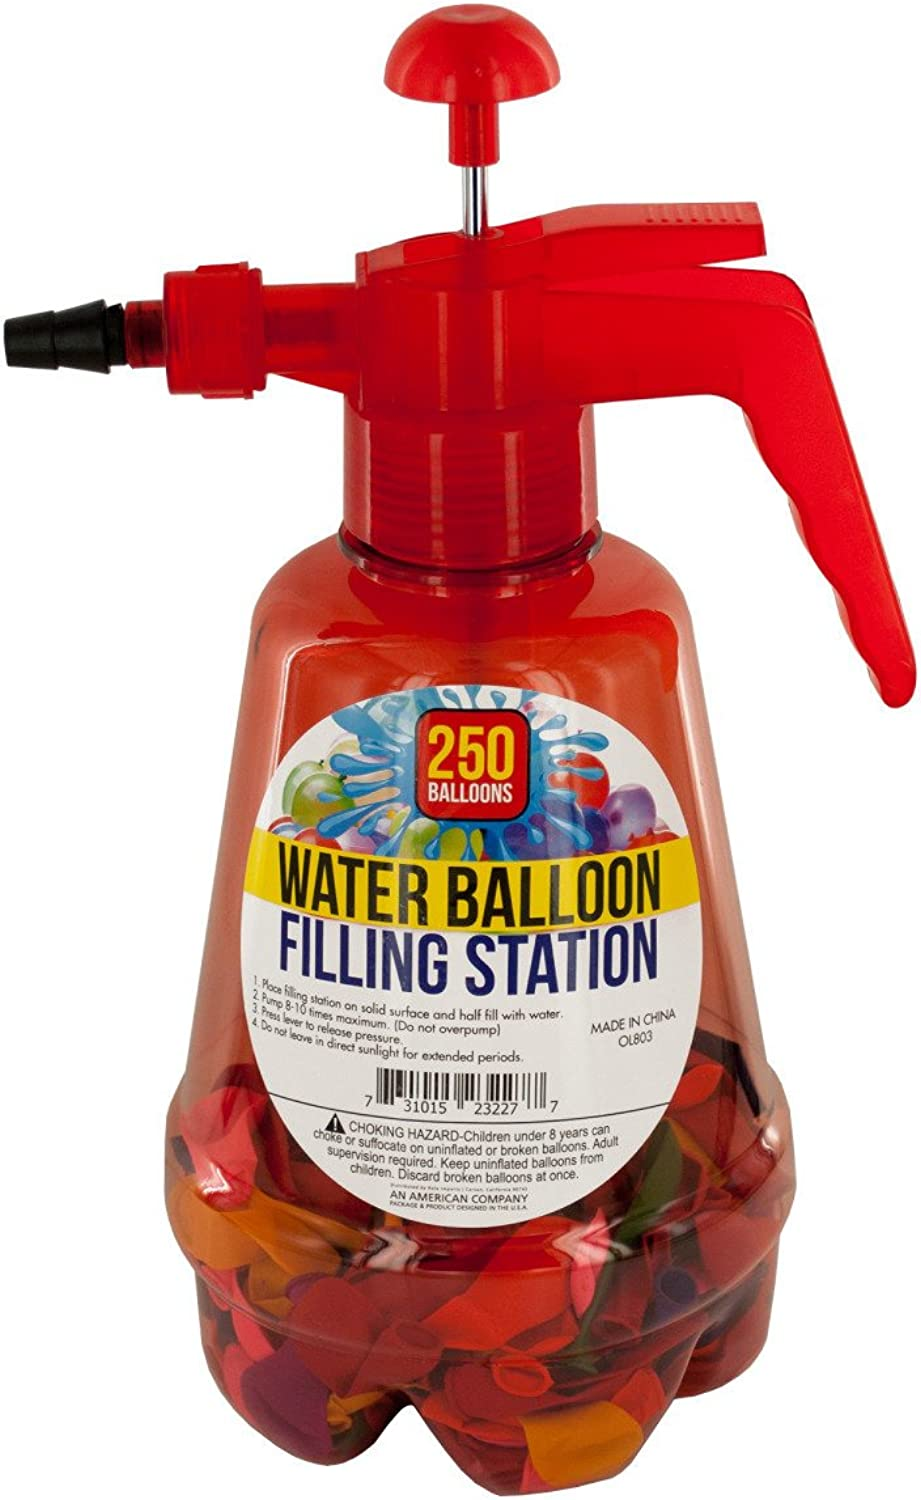 Water balloon filling station